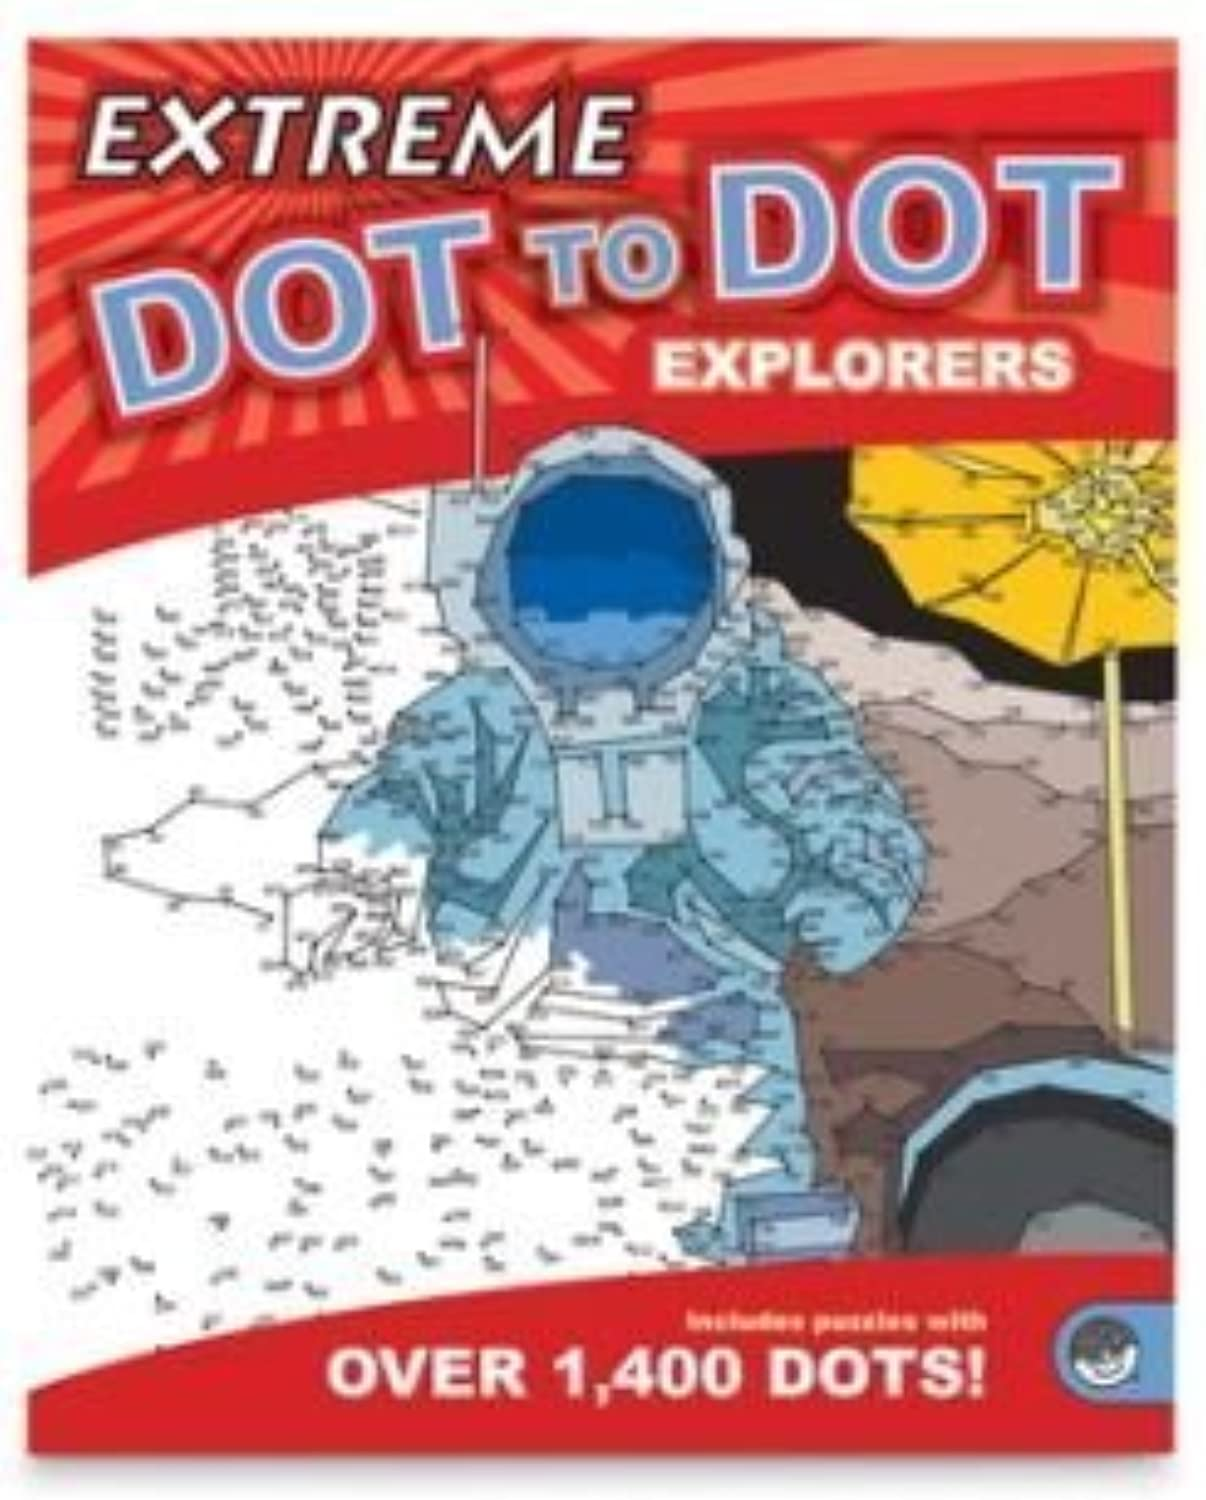 Extreme Dot to Dot  Explorers by MINDWARE